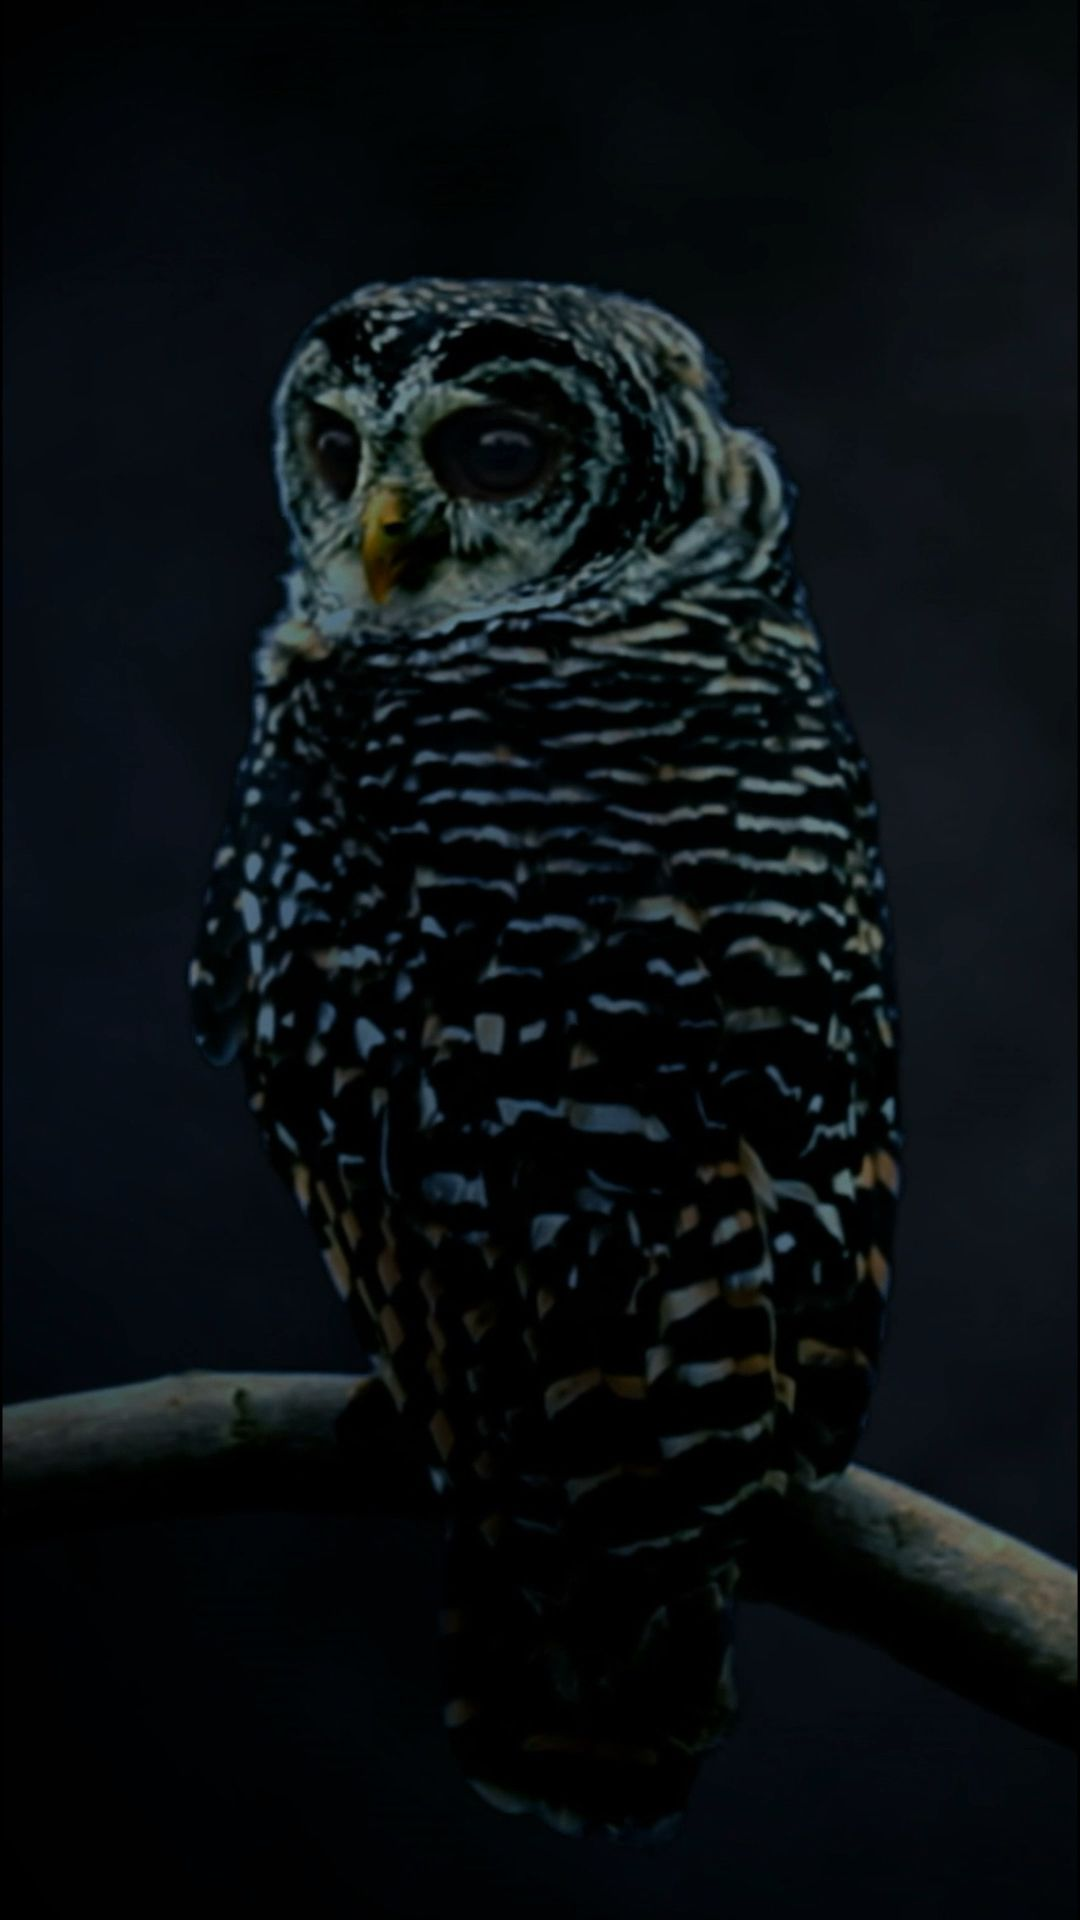 Owls wallpaper for your iPhone XS from Everpix Live owl